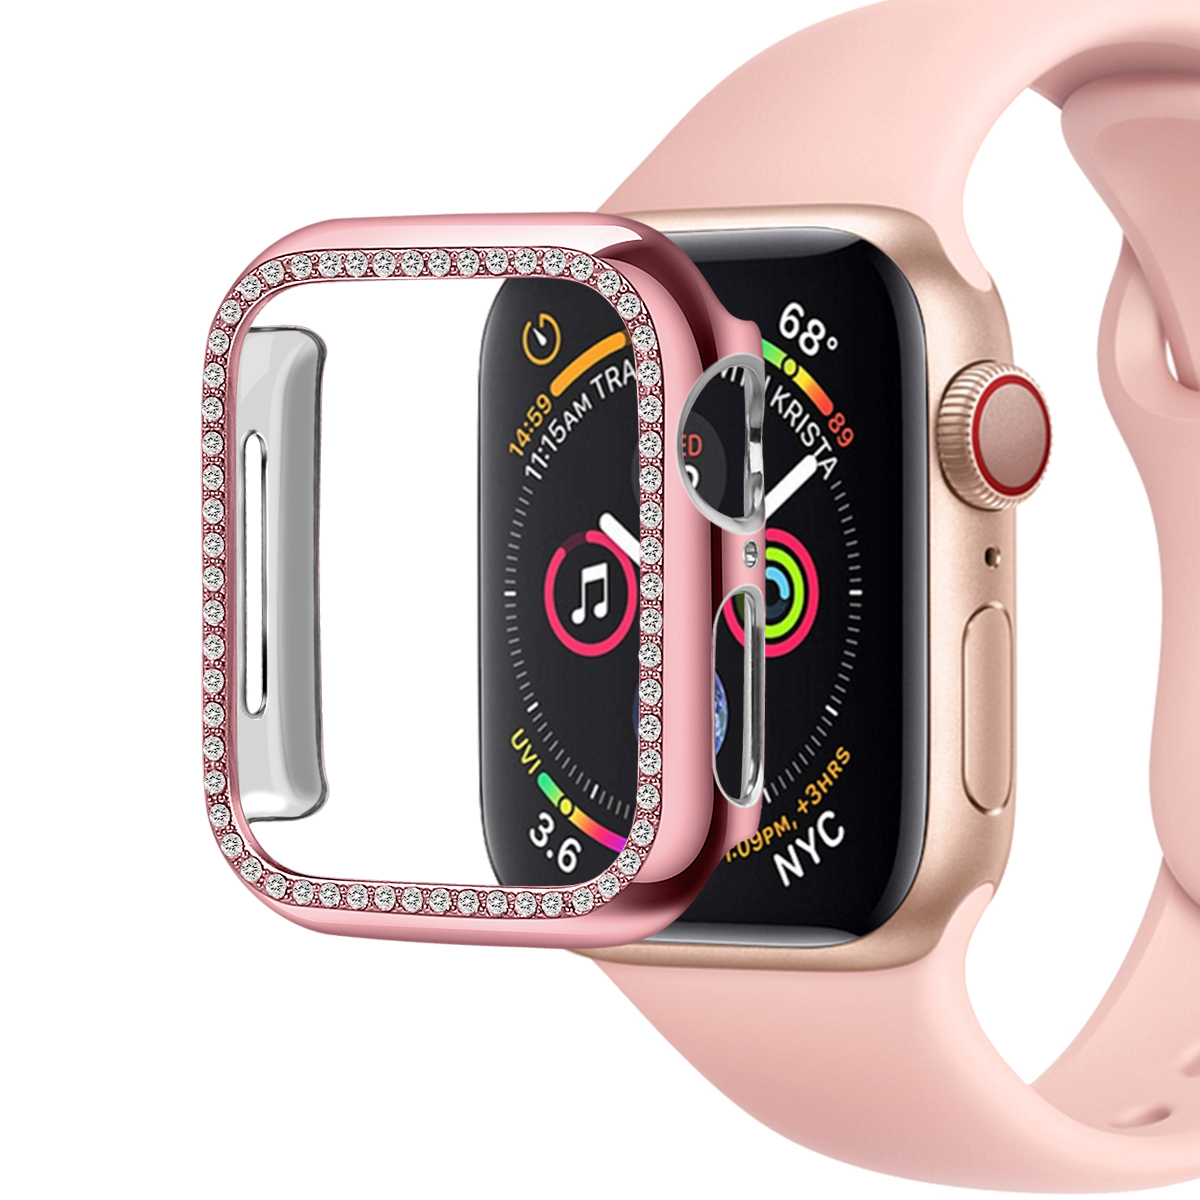 Diamond Protective Cover for Apple Watch Case Series 5 4 3 2 1 38mm 40mm 42mm 44mm Cases for Iwatch 5 Watch Accessories 81021